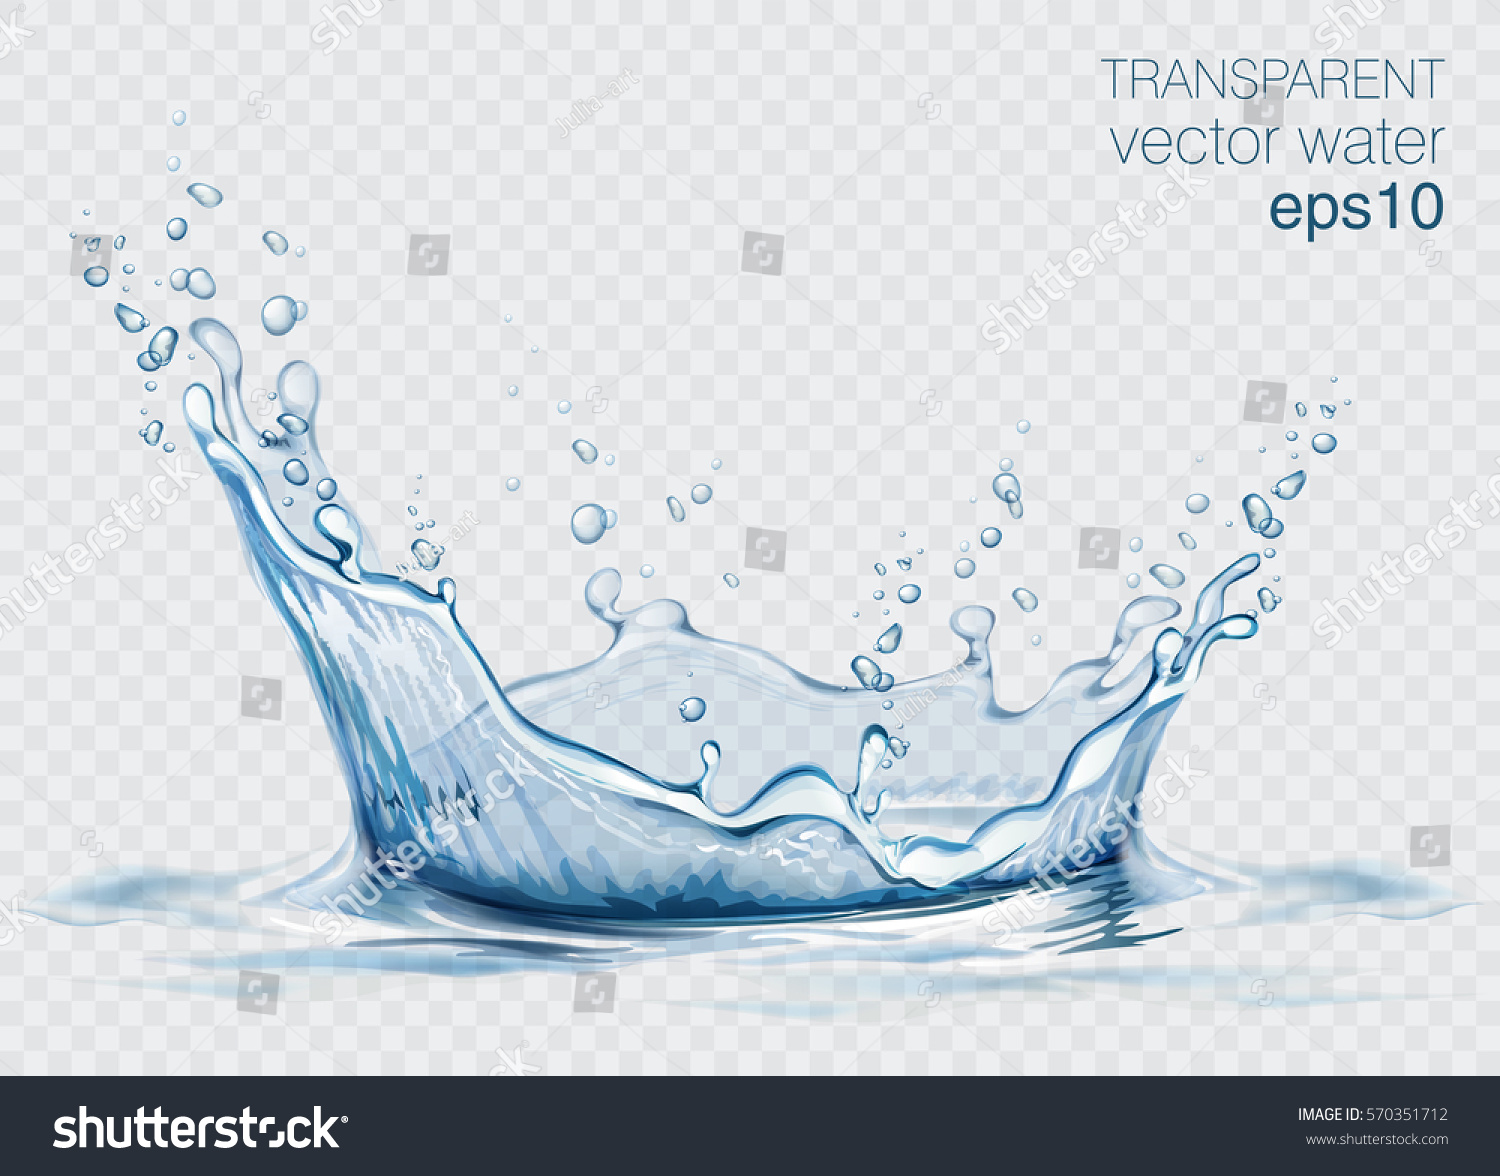 Transparent vector water splash and wave on light background #570351712